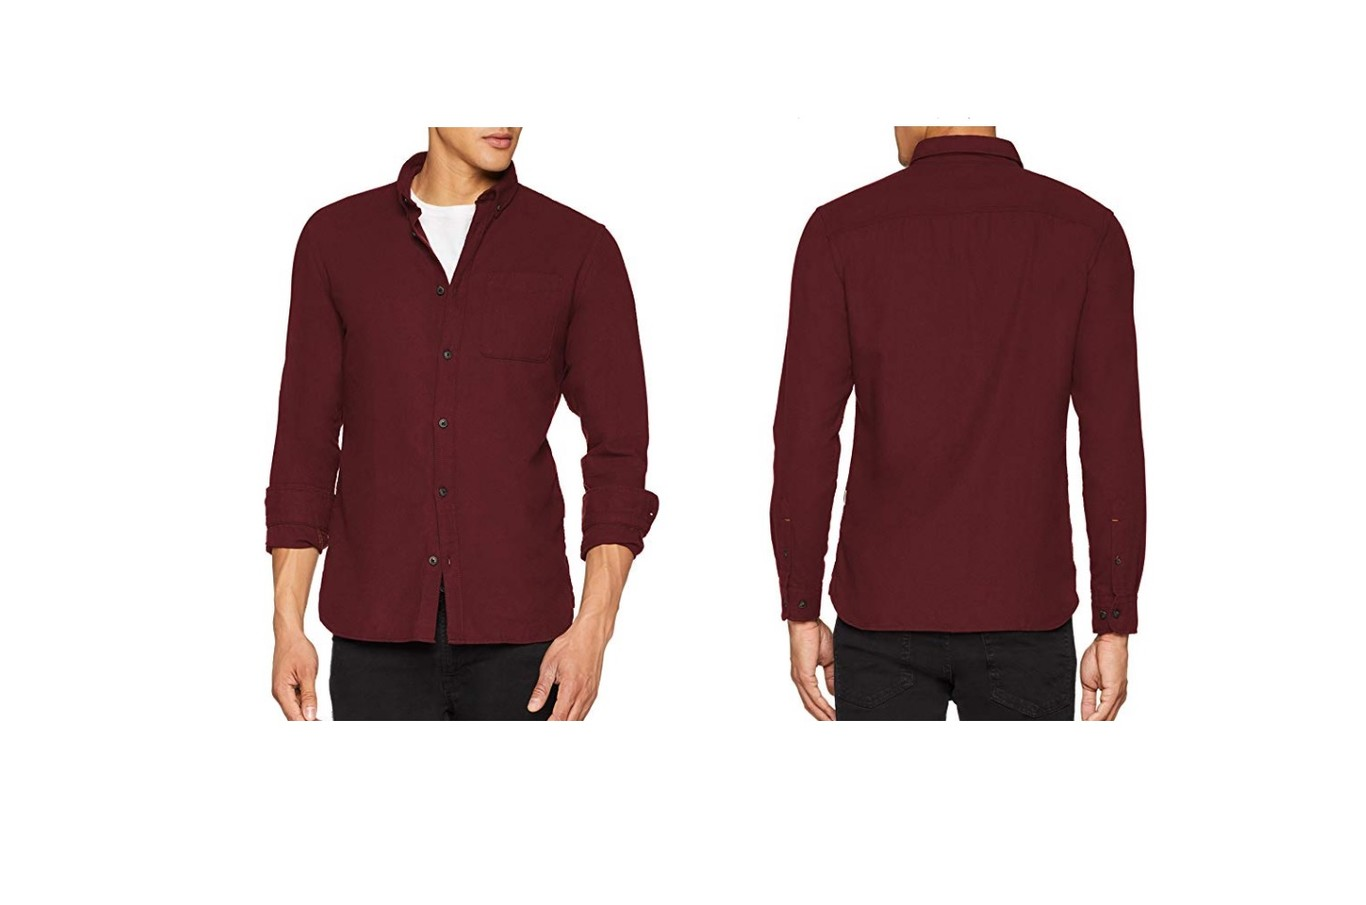 ¿Necesitas una camisa nueva  la Jorchris Shirt LS One Pocket de Jack   Jones  está disponible desde 11,01 euros en Amazon 678eda117a